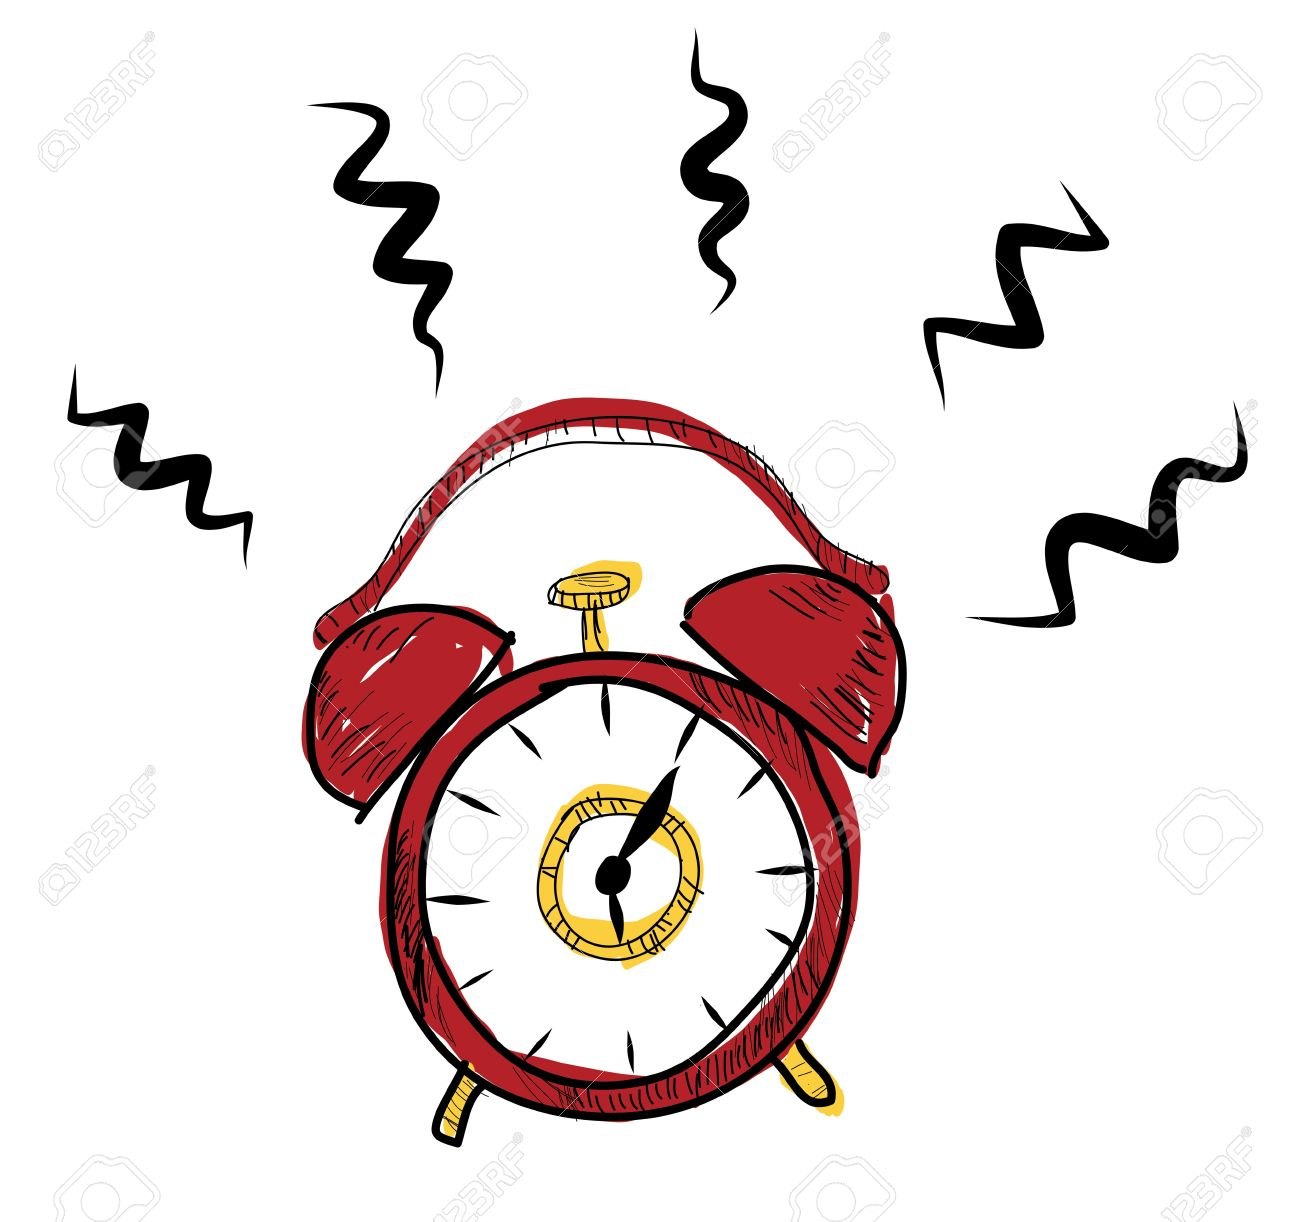 1300x1222 Drawing Classic Alarm Clock Stock Photo, Picture And Royalty Free